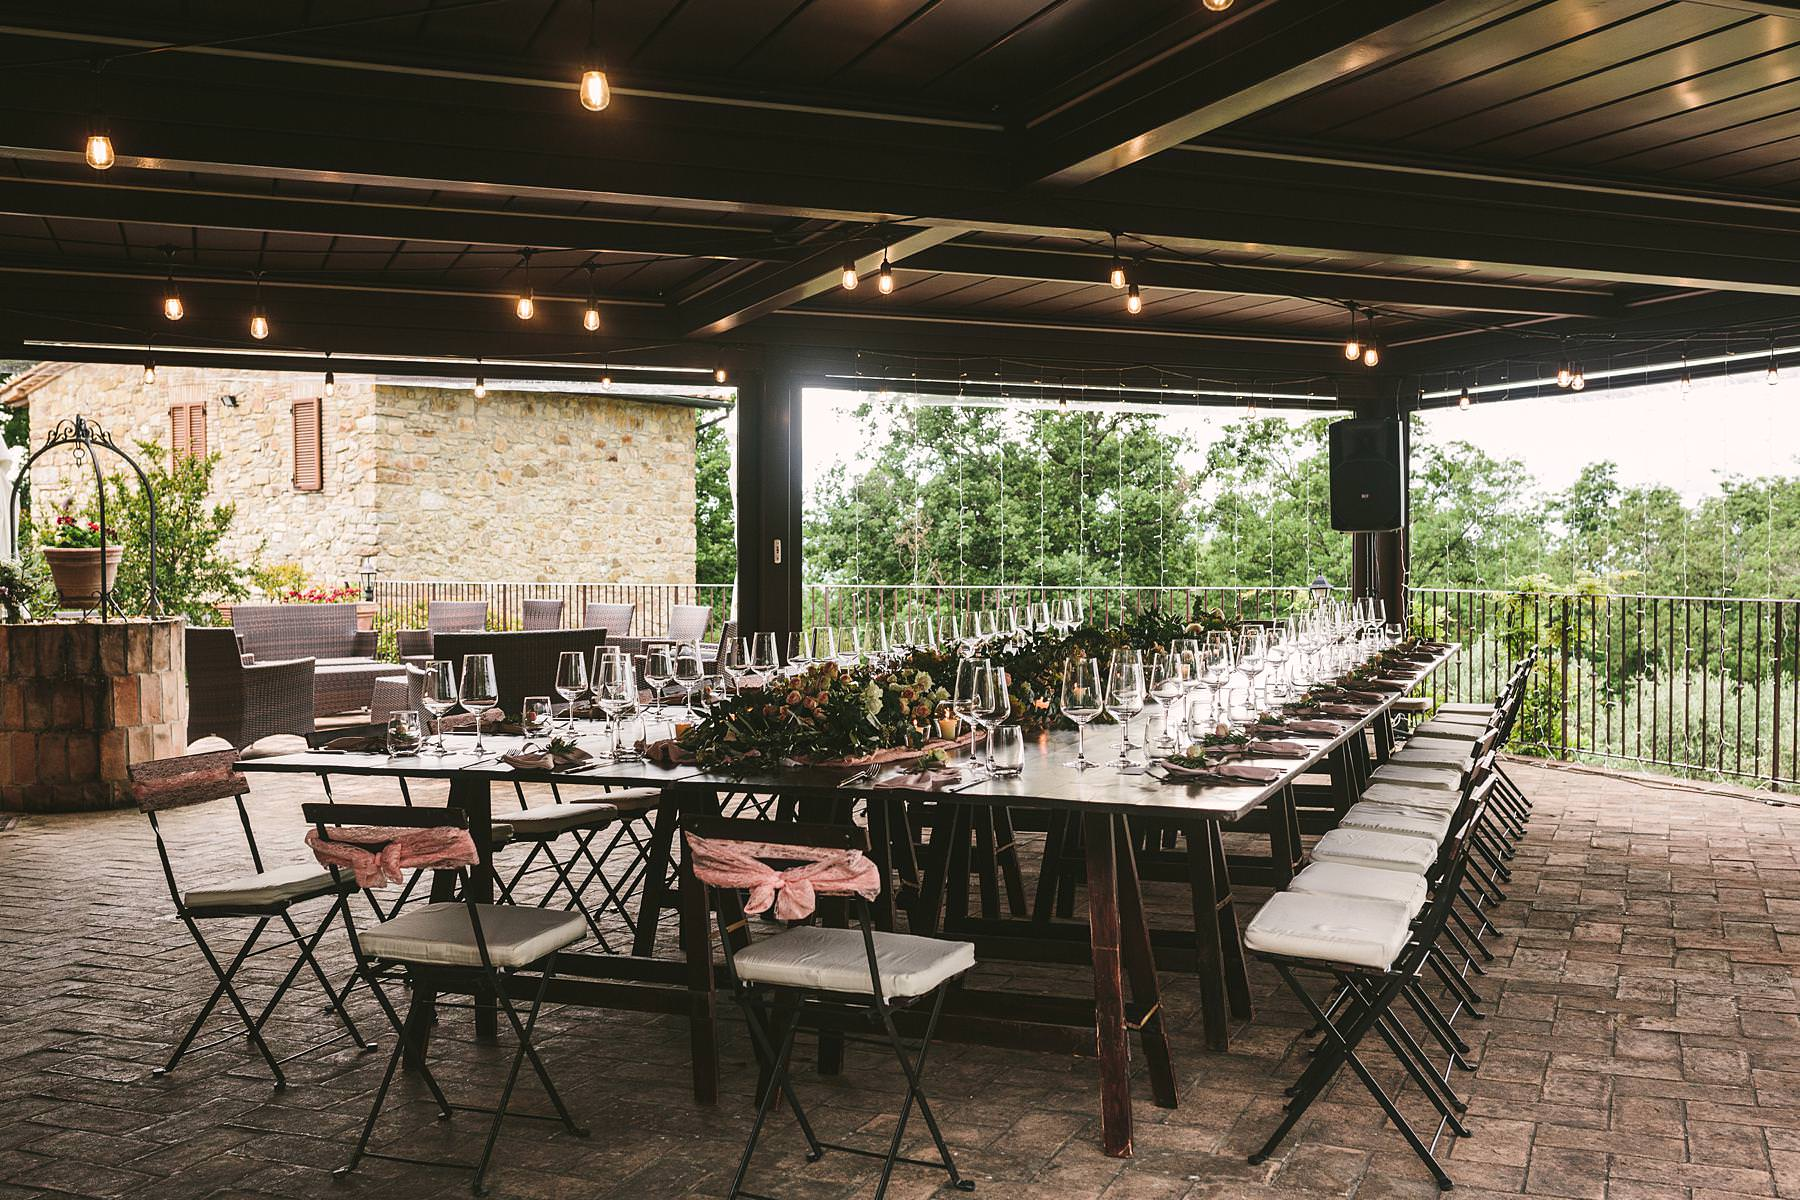 Lovely indoor wedding dinner decor table at Villa Le Bolli venue near Radicondoli in Tuscany countryside